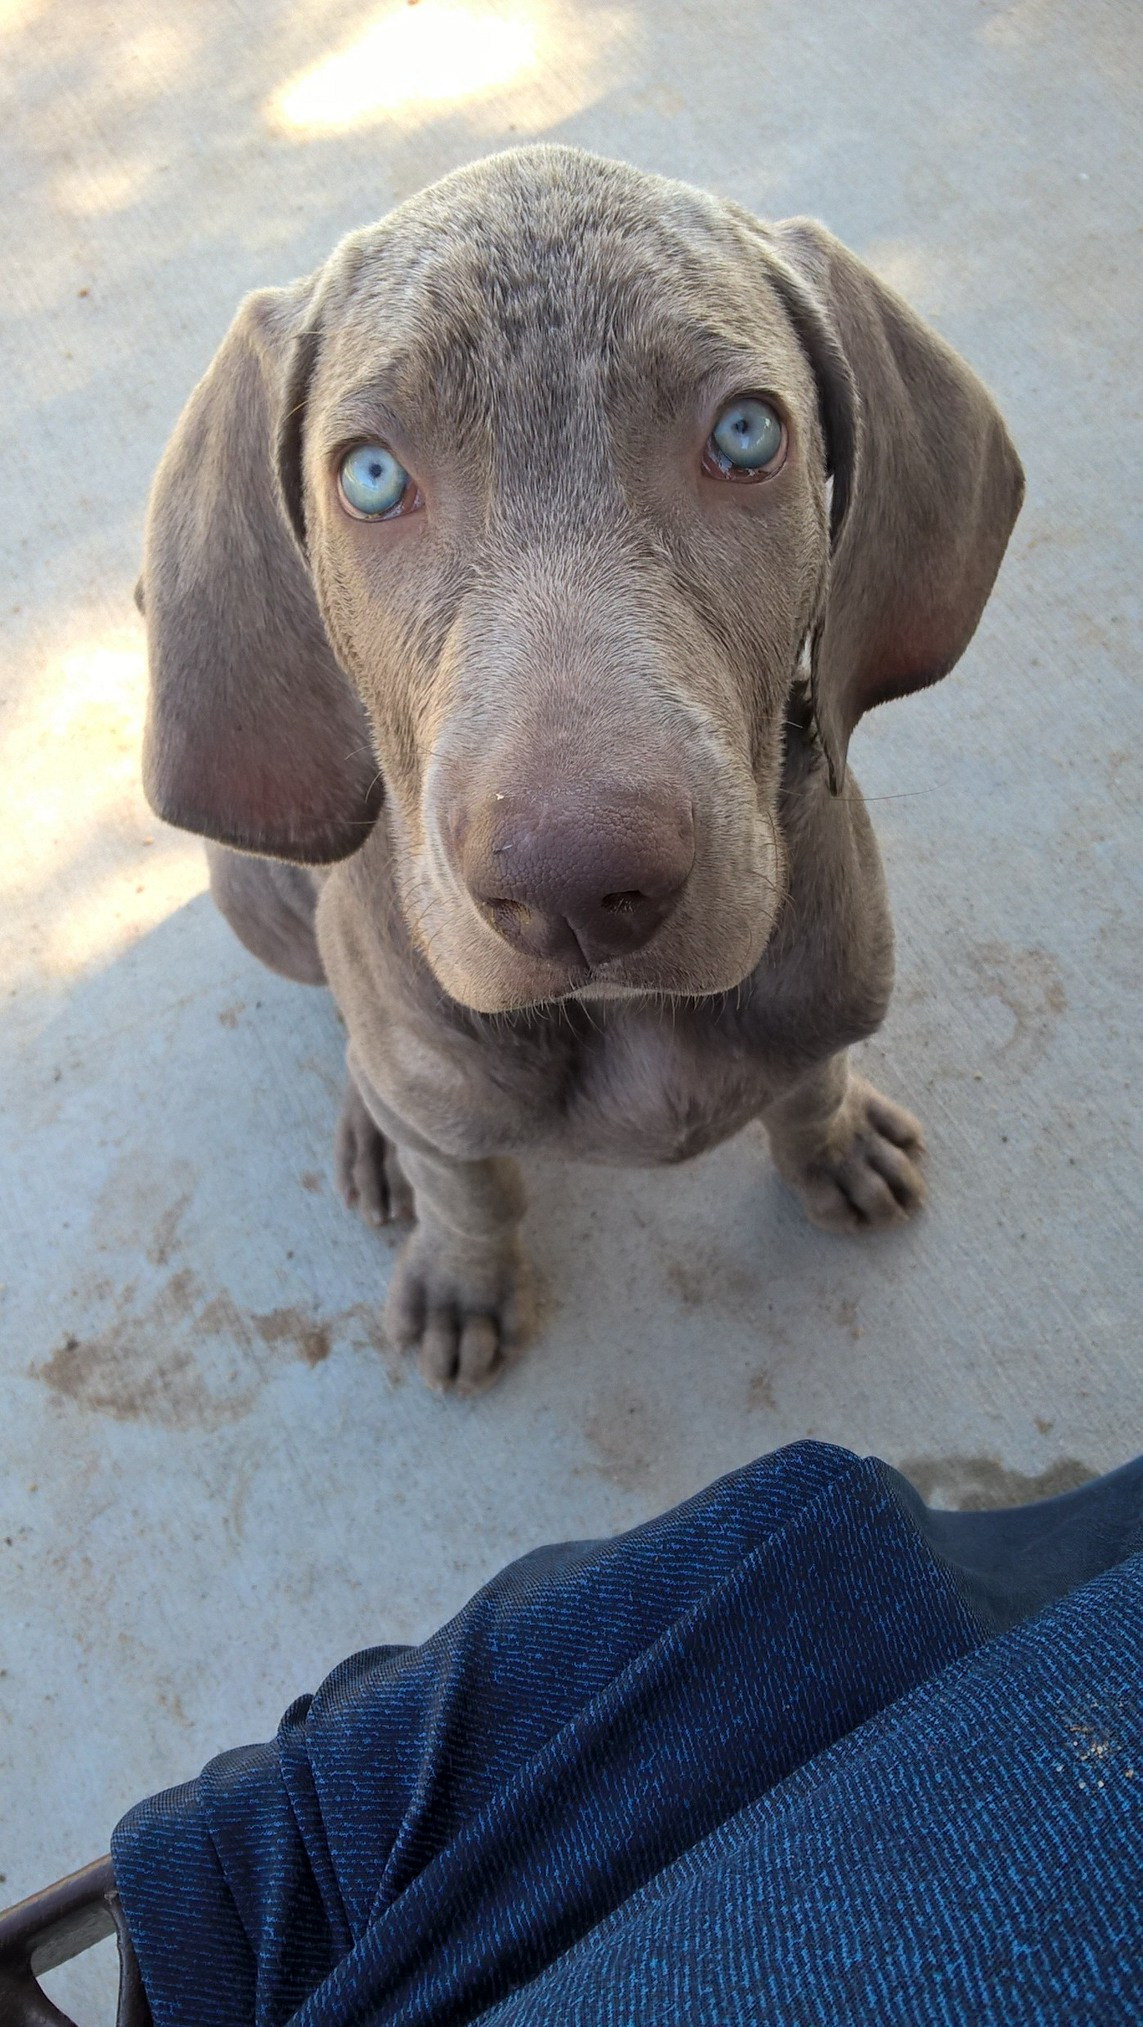 Look at those blue eyes!